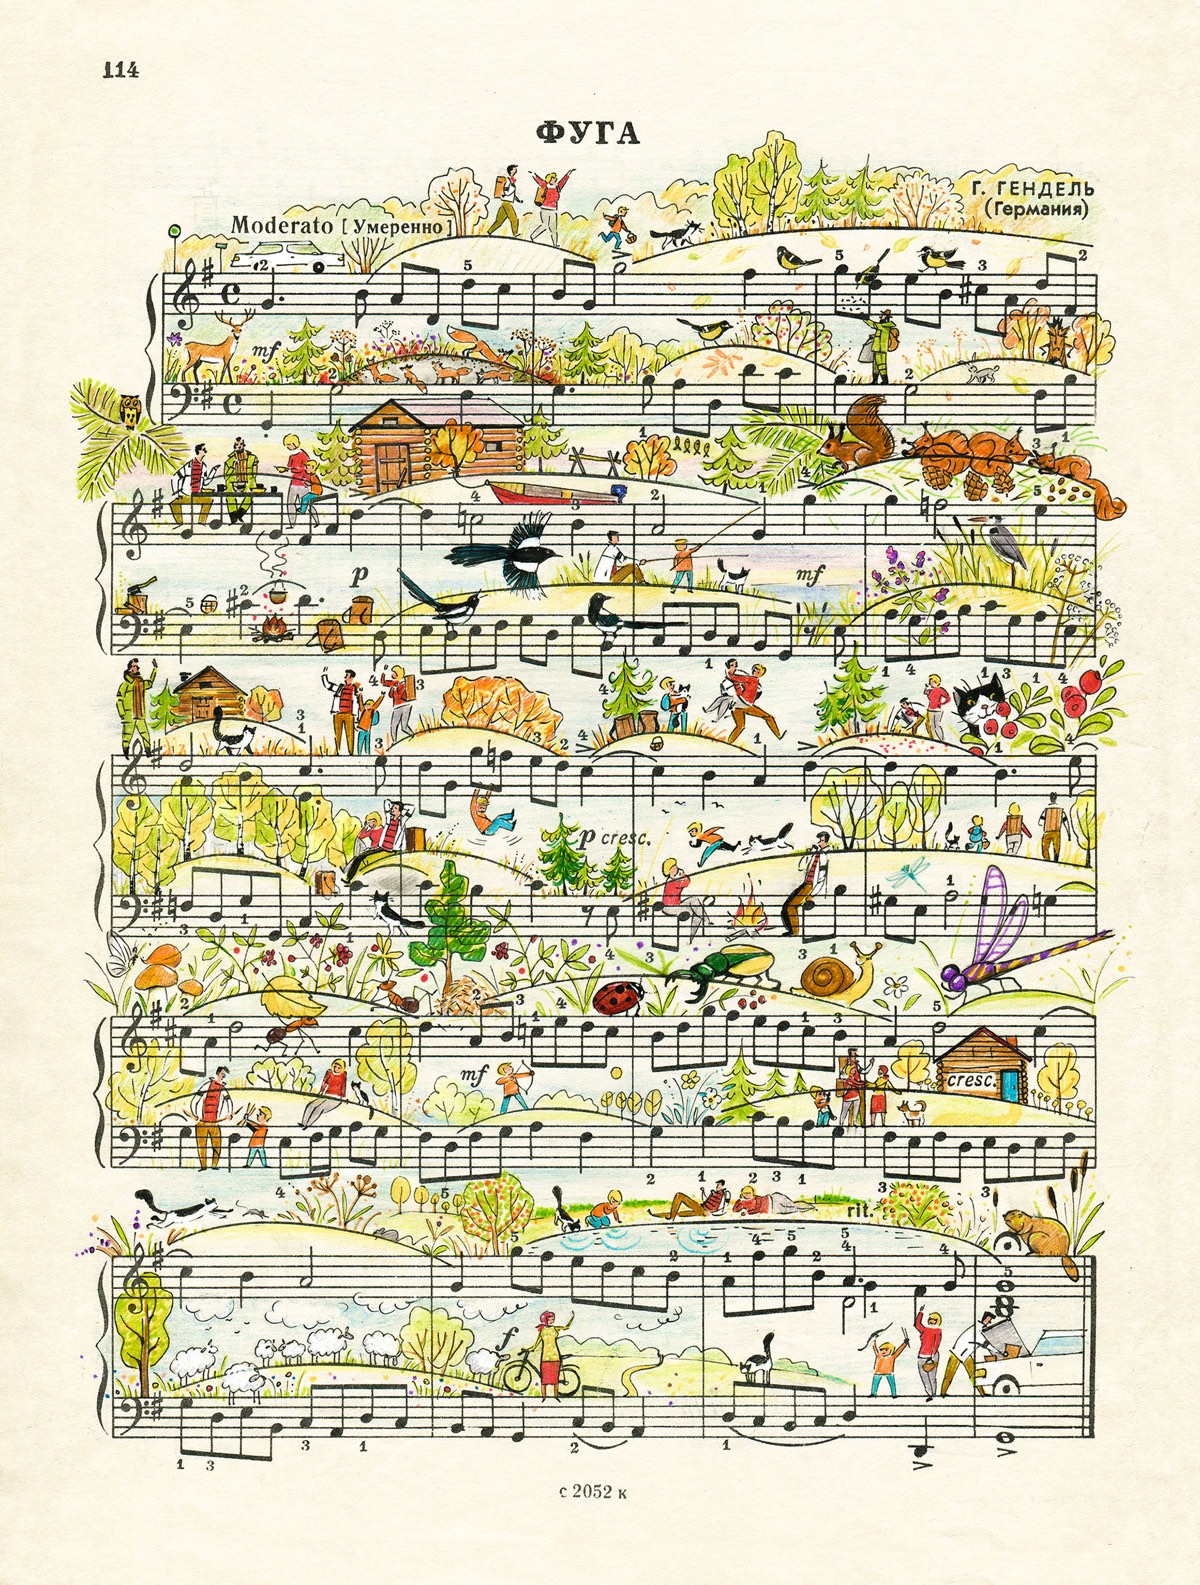 http://kottke.org/16/12/lovely-illustrations-drawn-on-vintage-sheet-music